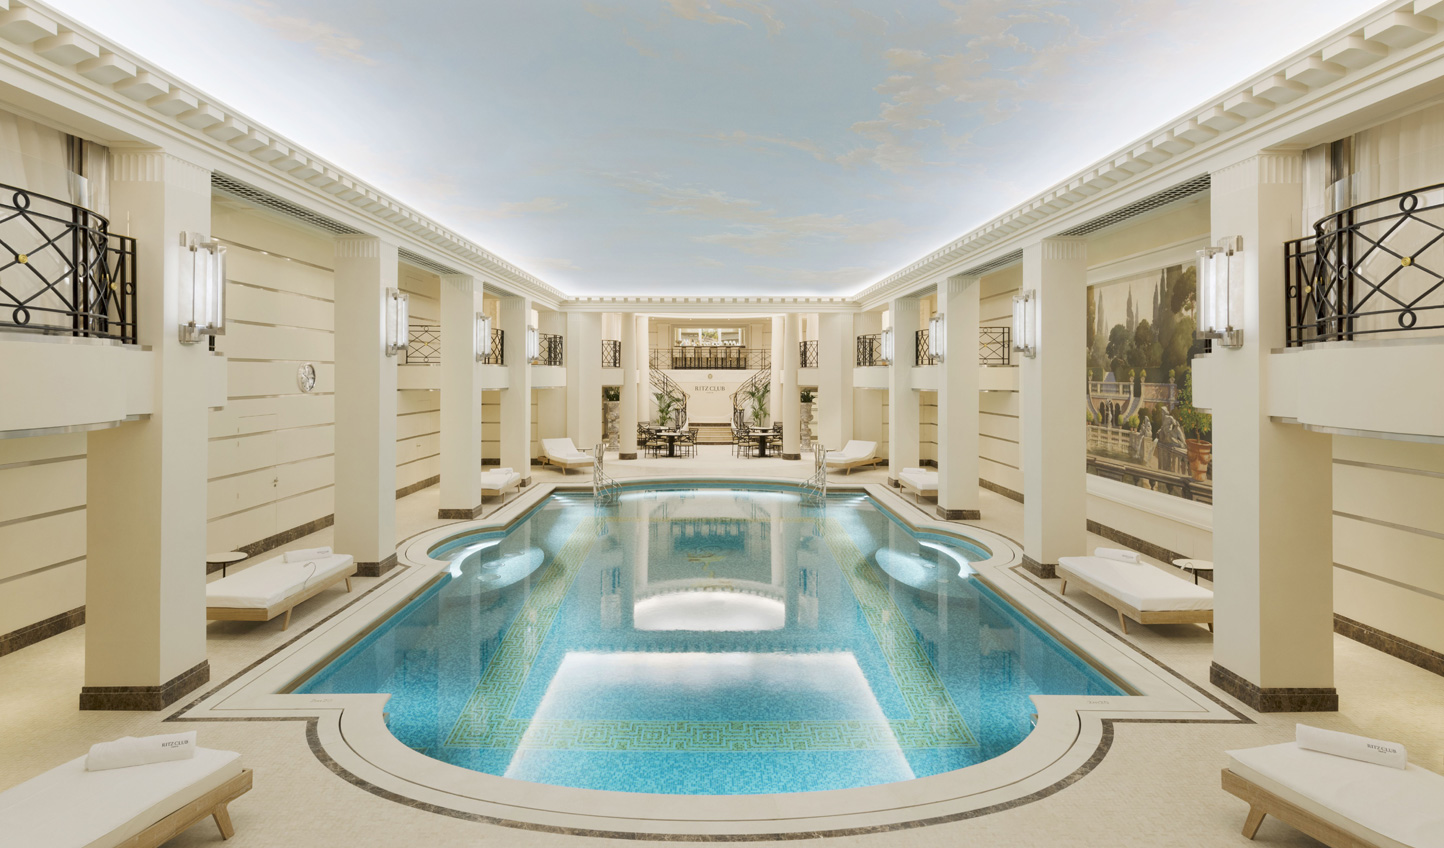 The Ritz Club has a luxurious pool to take a dip in